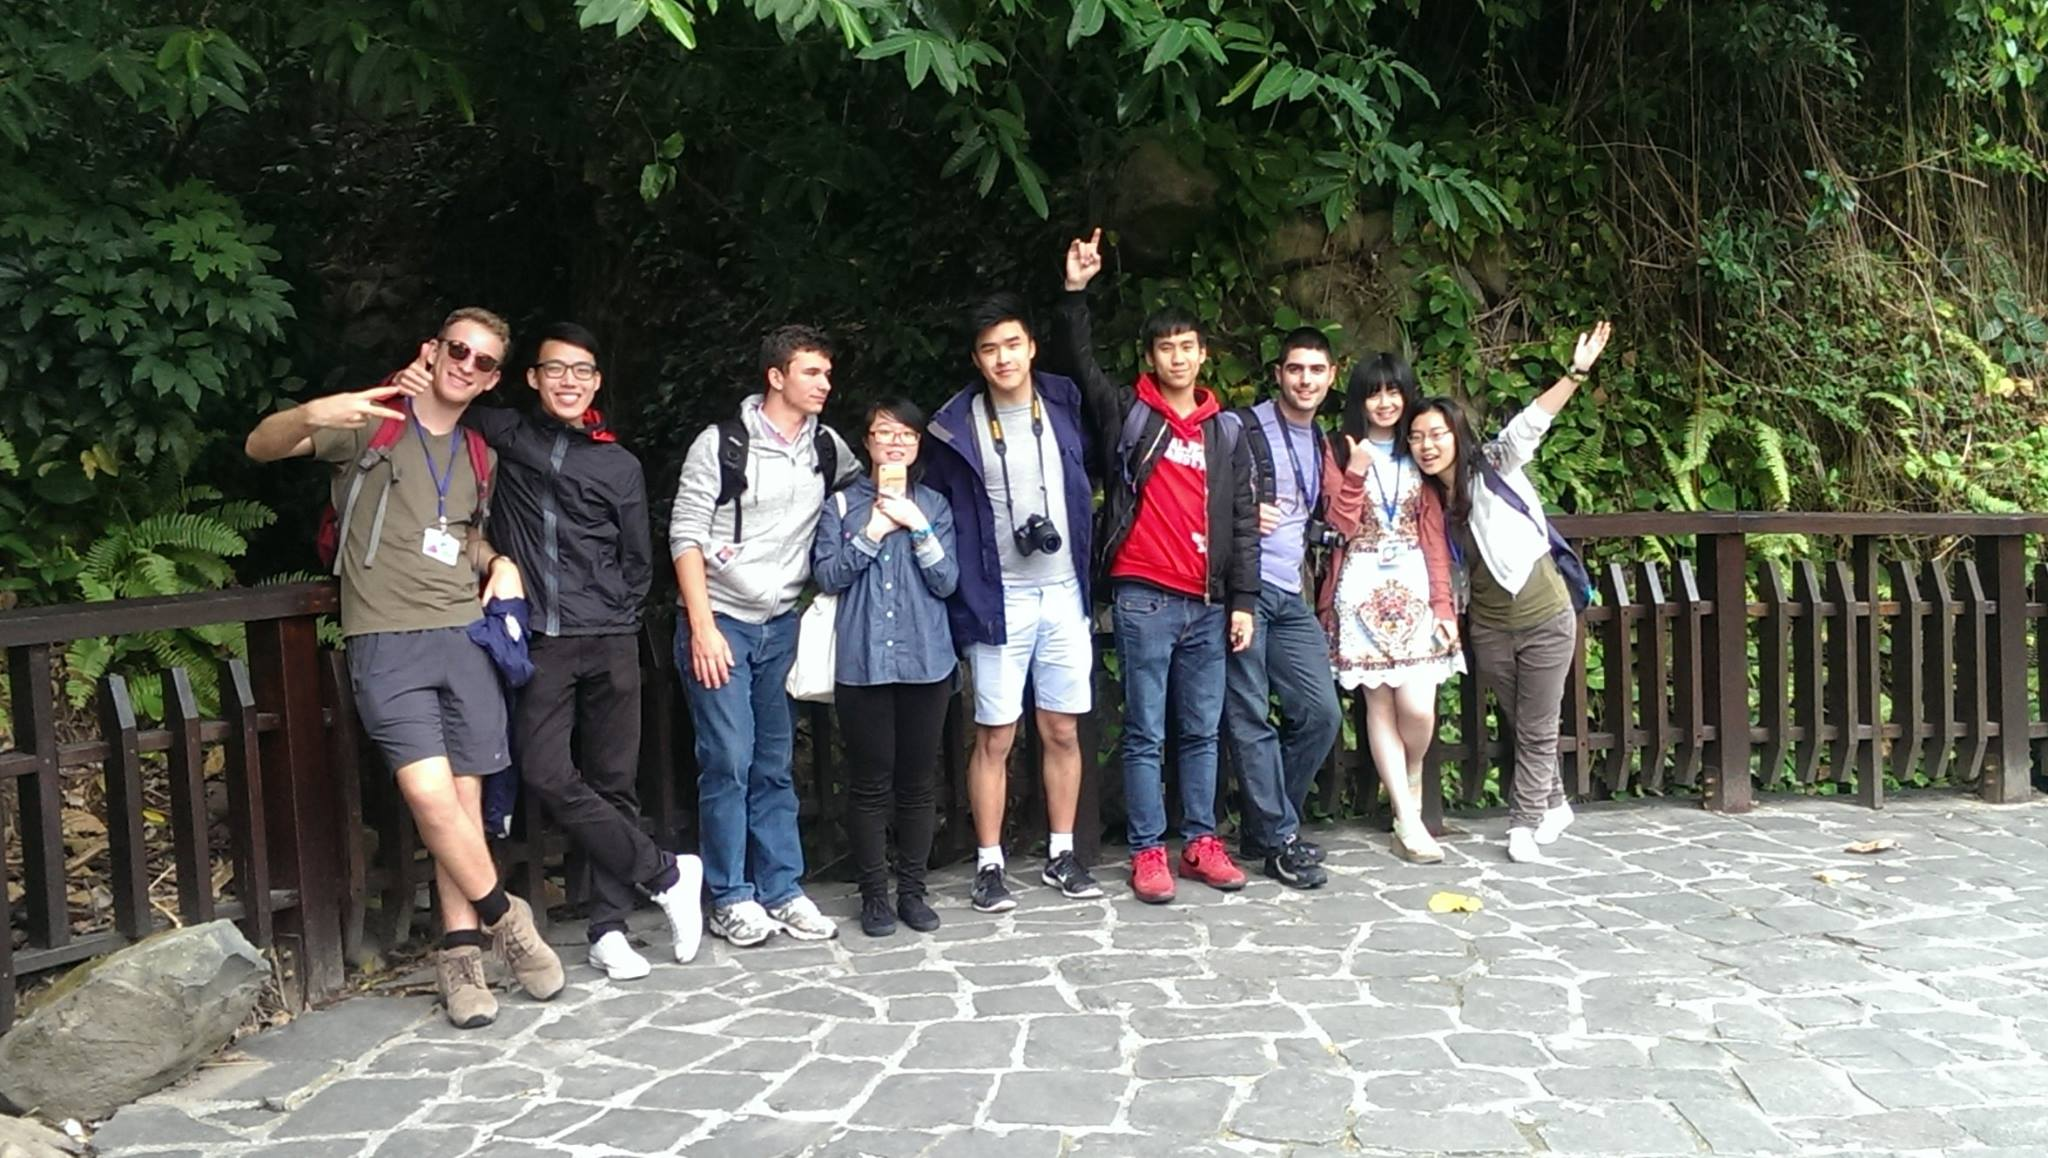 FBE students Beitou Valley